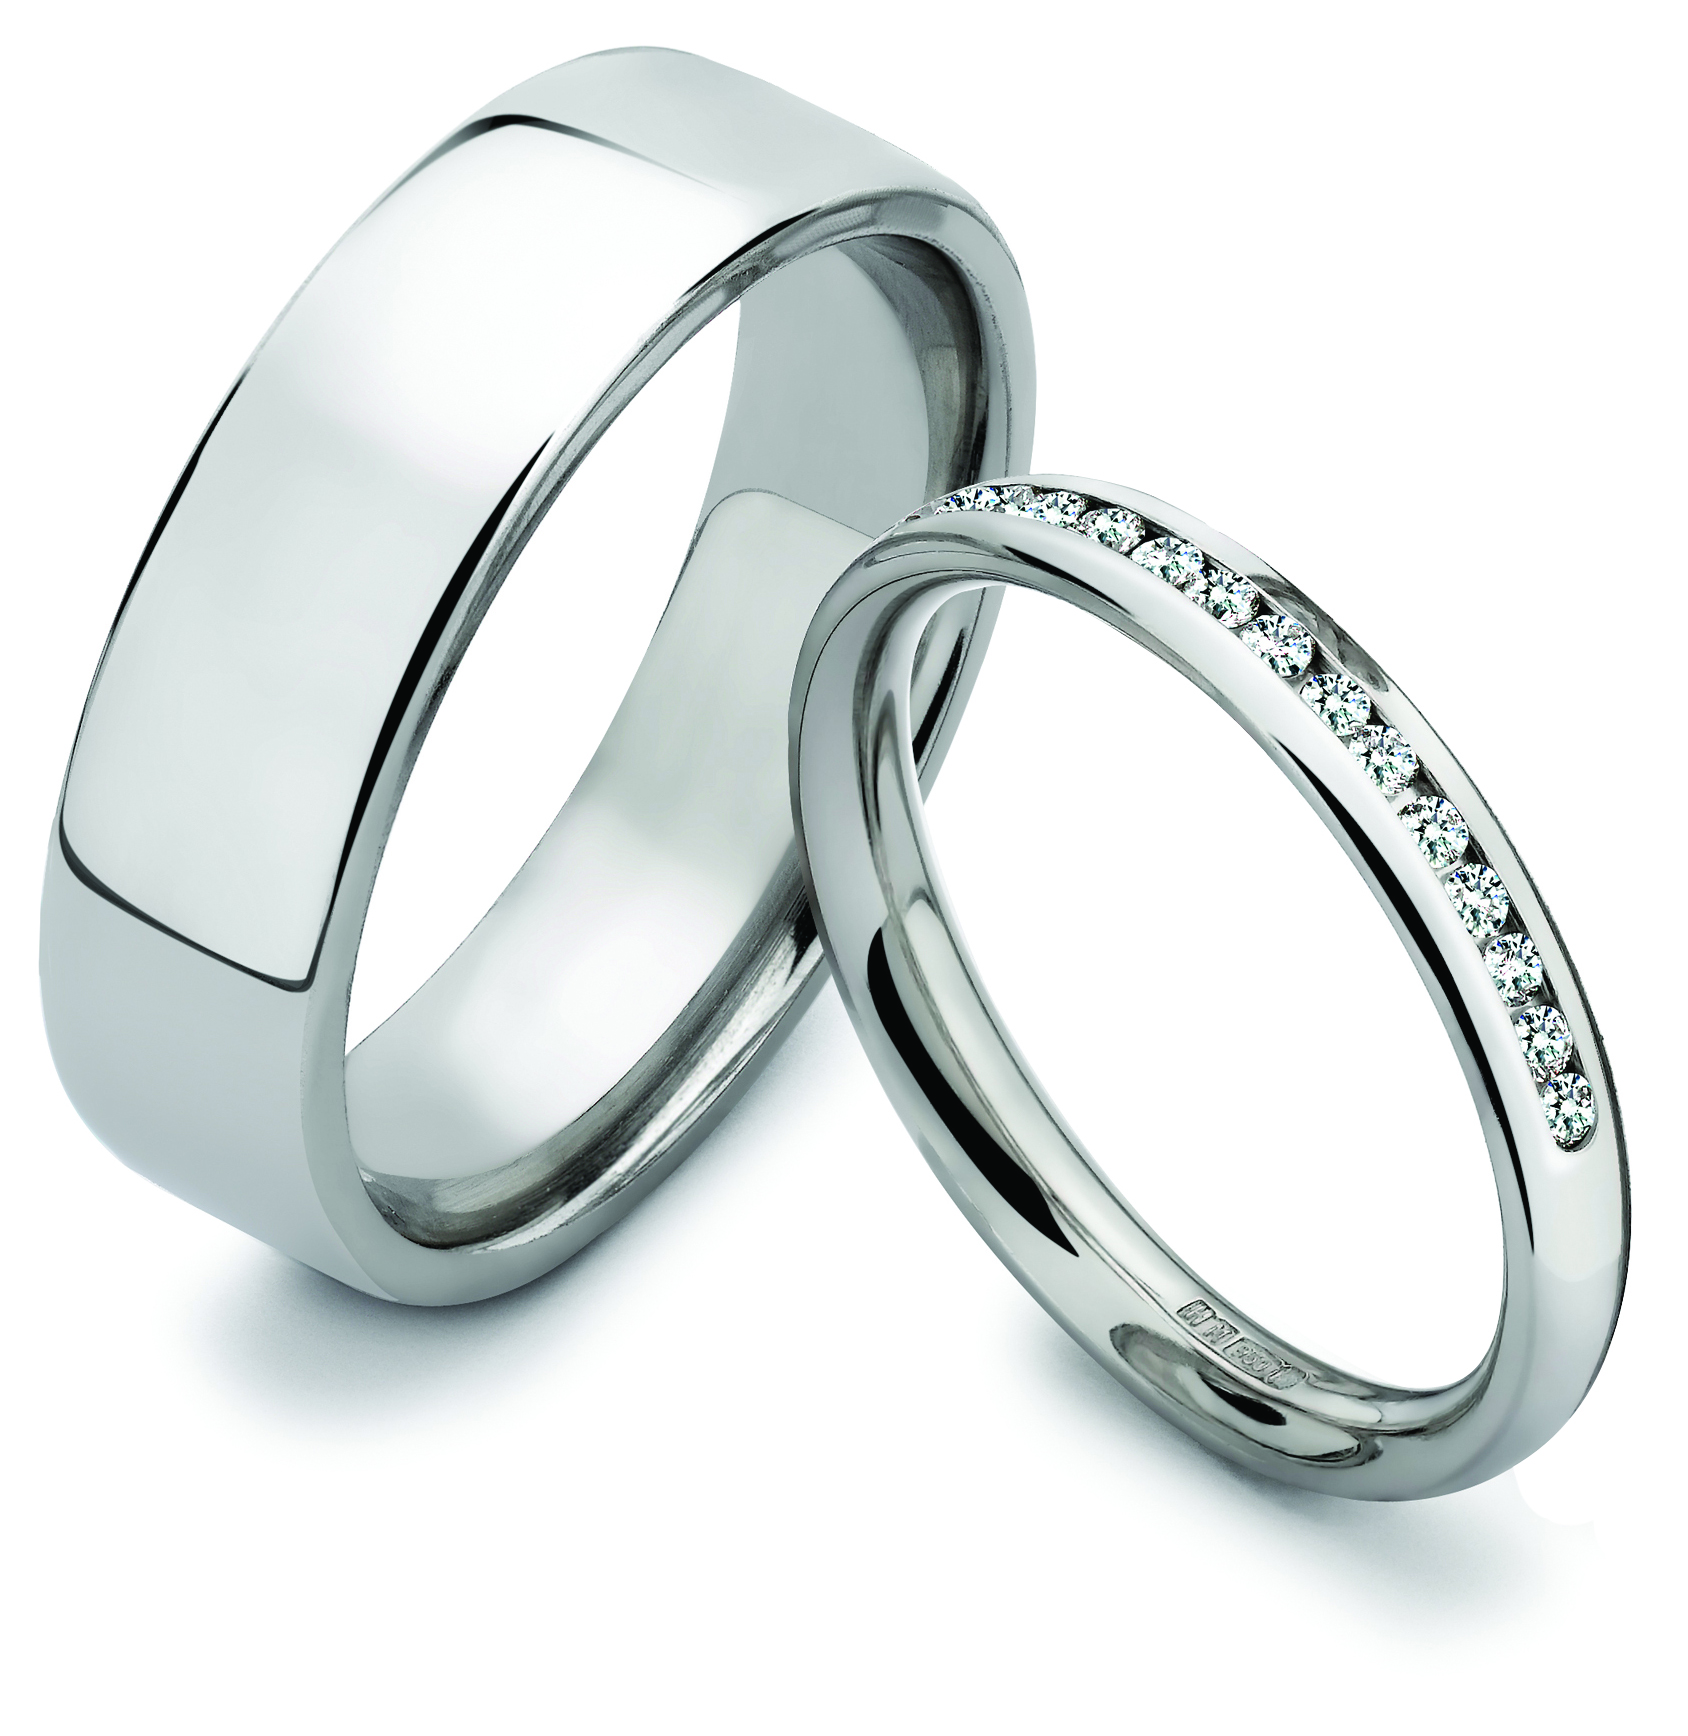 picture of wedding rings rings wedding Vintage Platinum Wedding Rings Are Beautiful Indeed These Rings